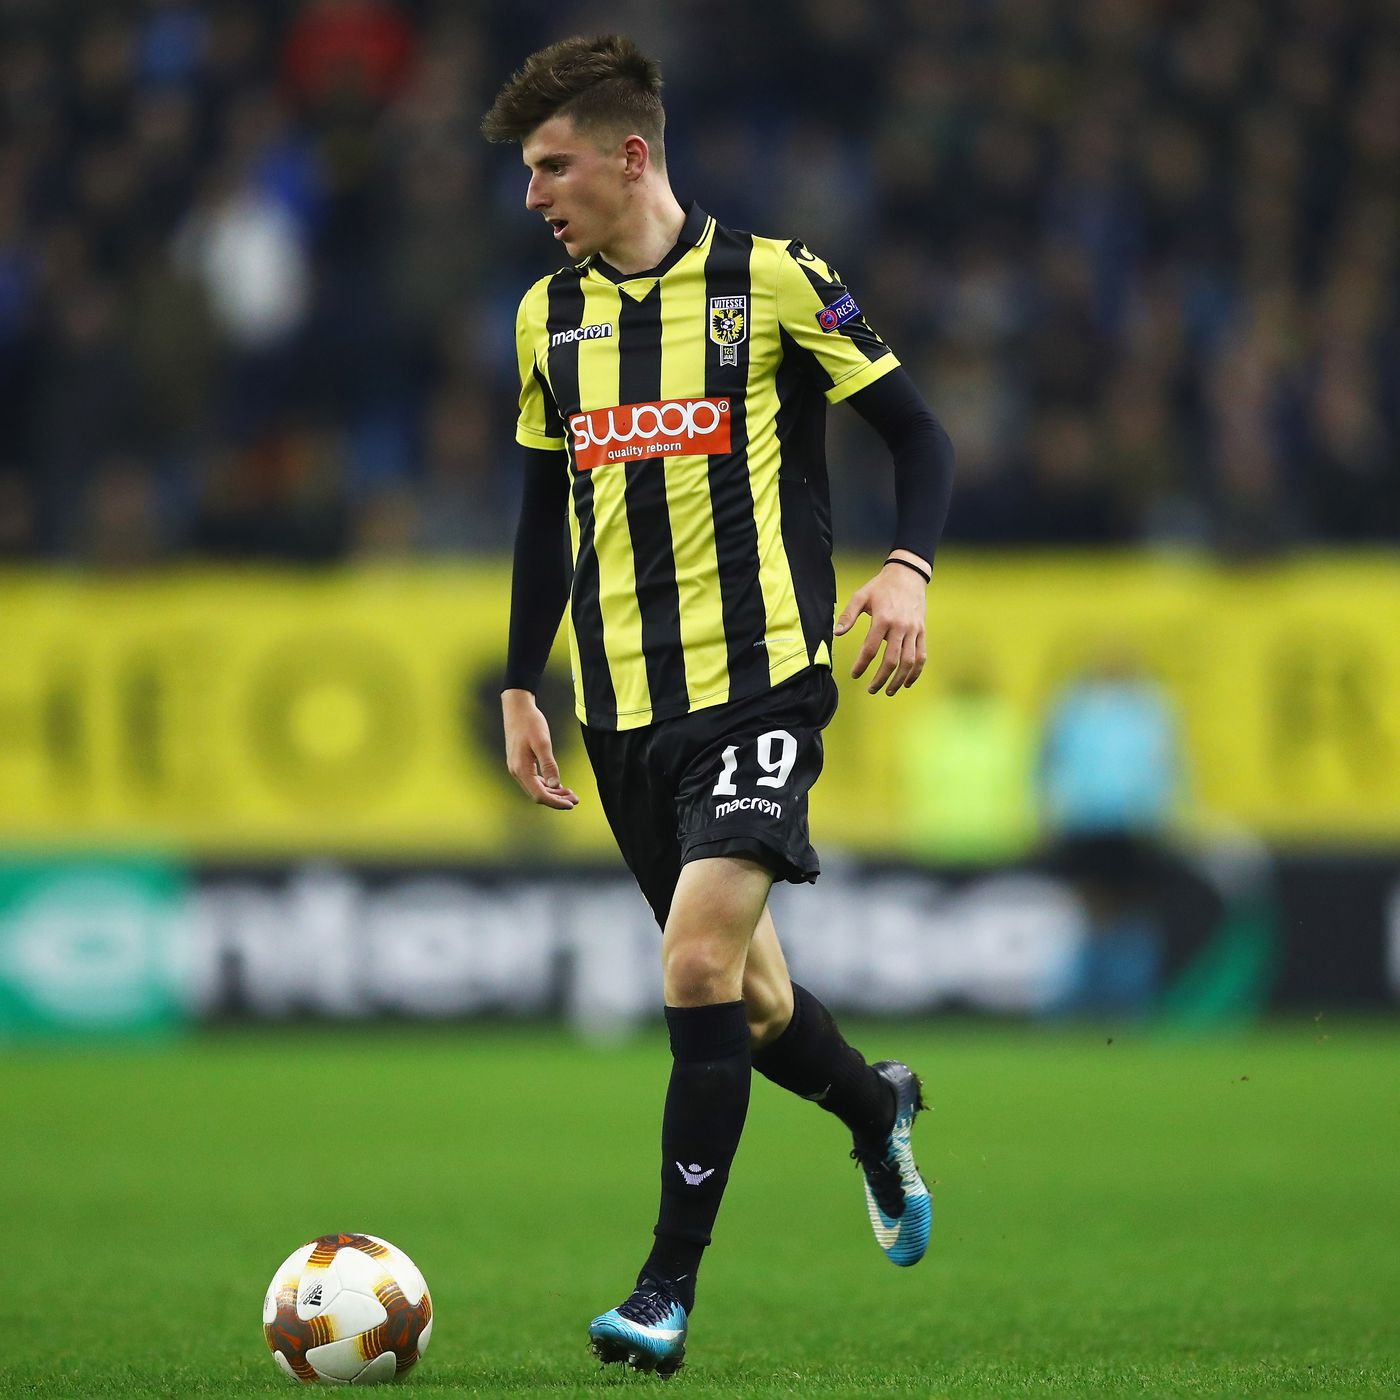 Mason Mount Becomes Third Chelsea Loanee To Win Vitesse Player Of The Year Award We Ain T Got No History